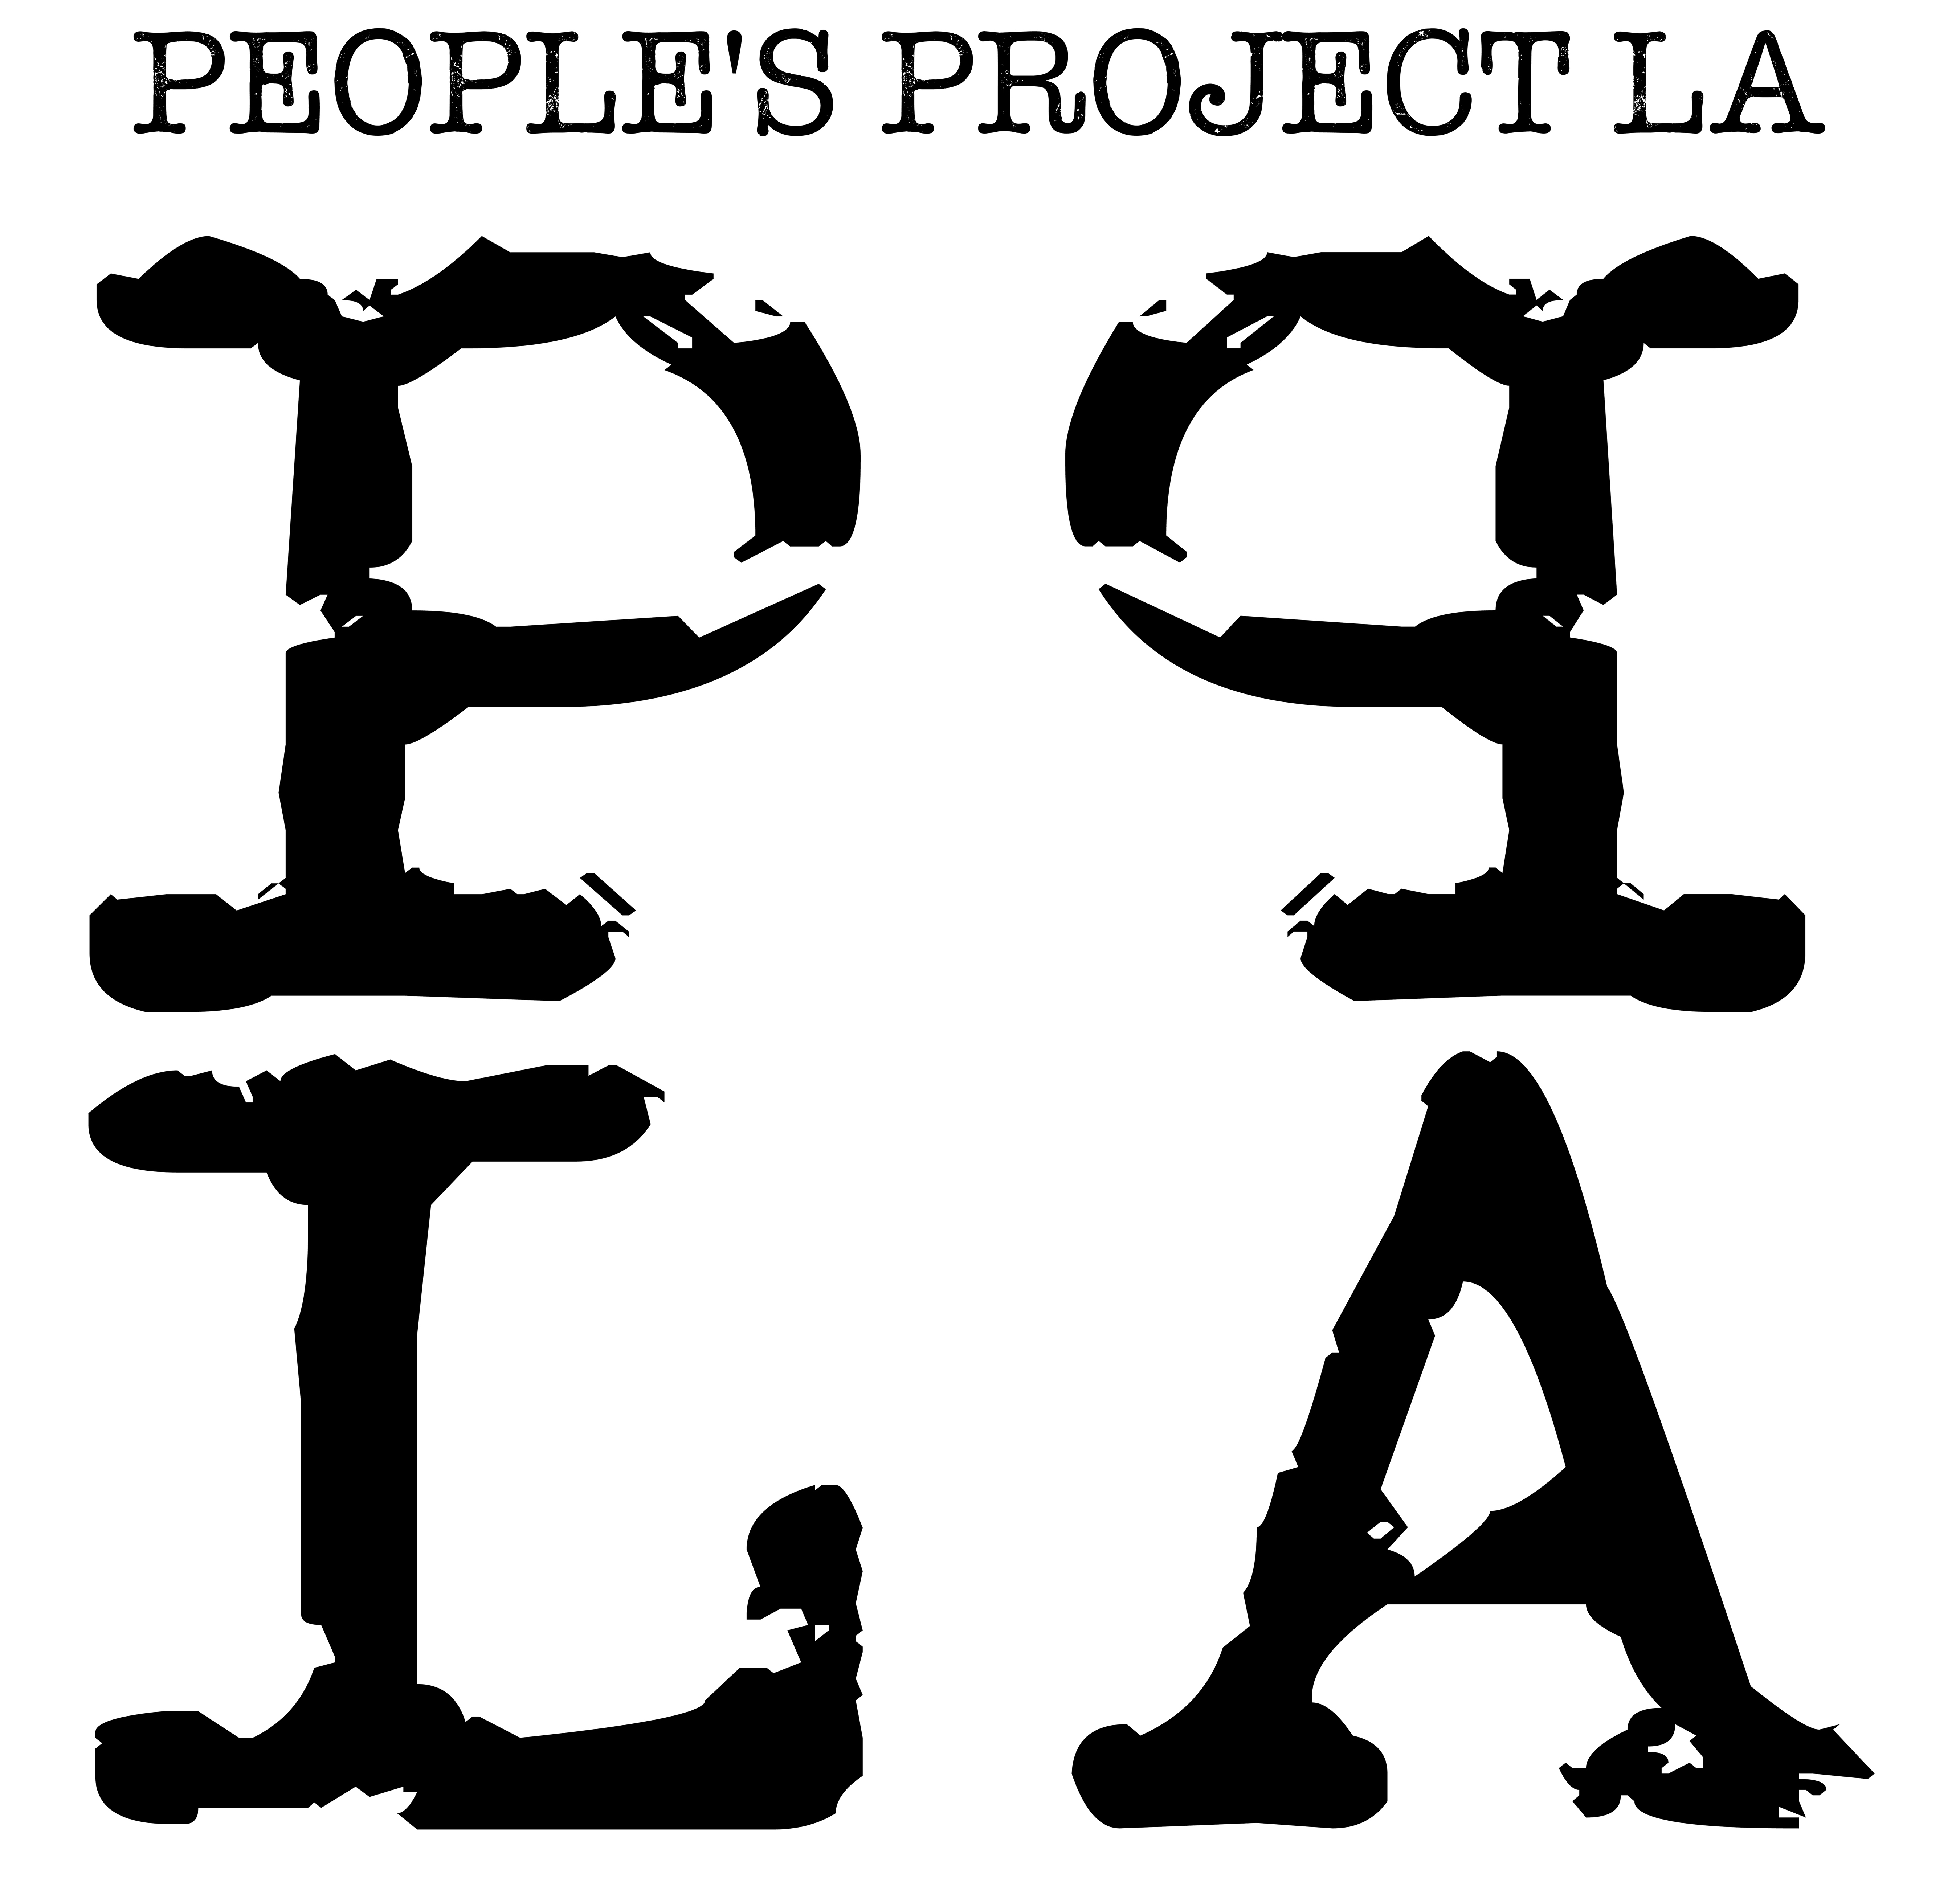 People's Project LA logo